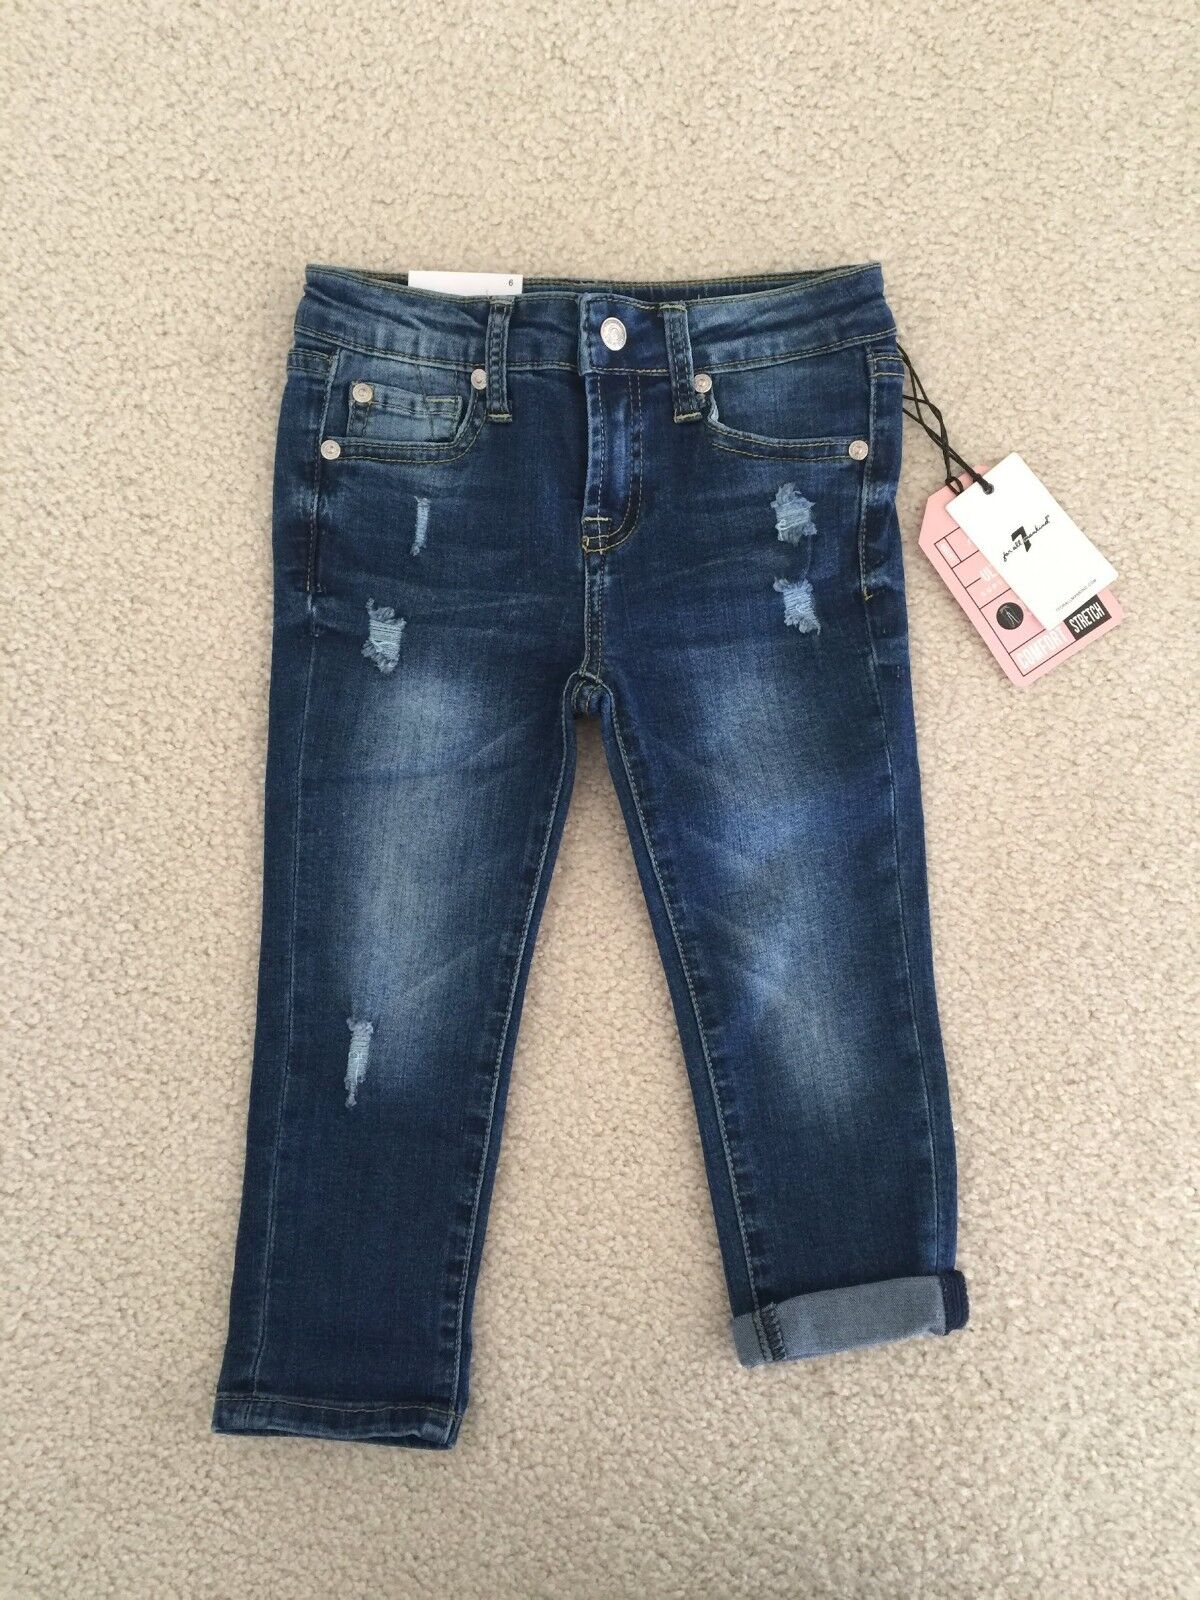 NWT 7 For All Mankind Girl's Skinny Crop and Roll Bella Heri